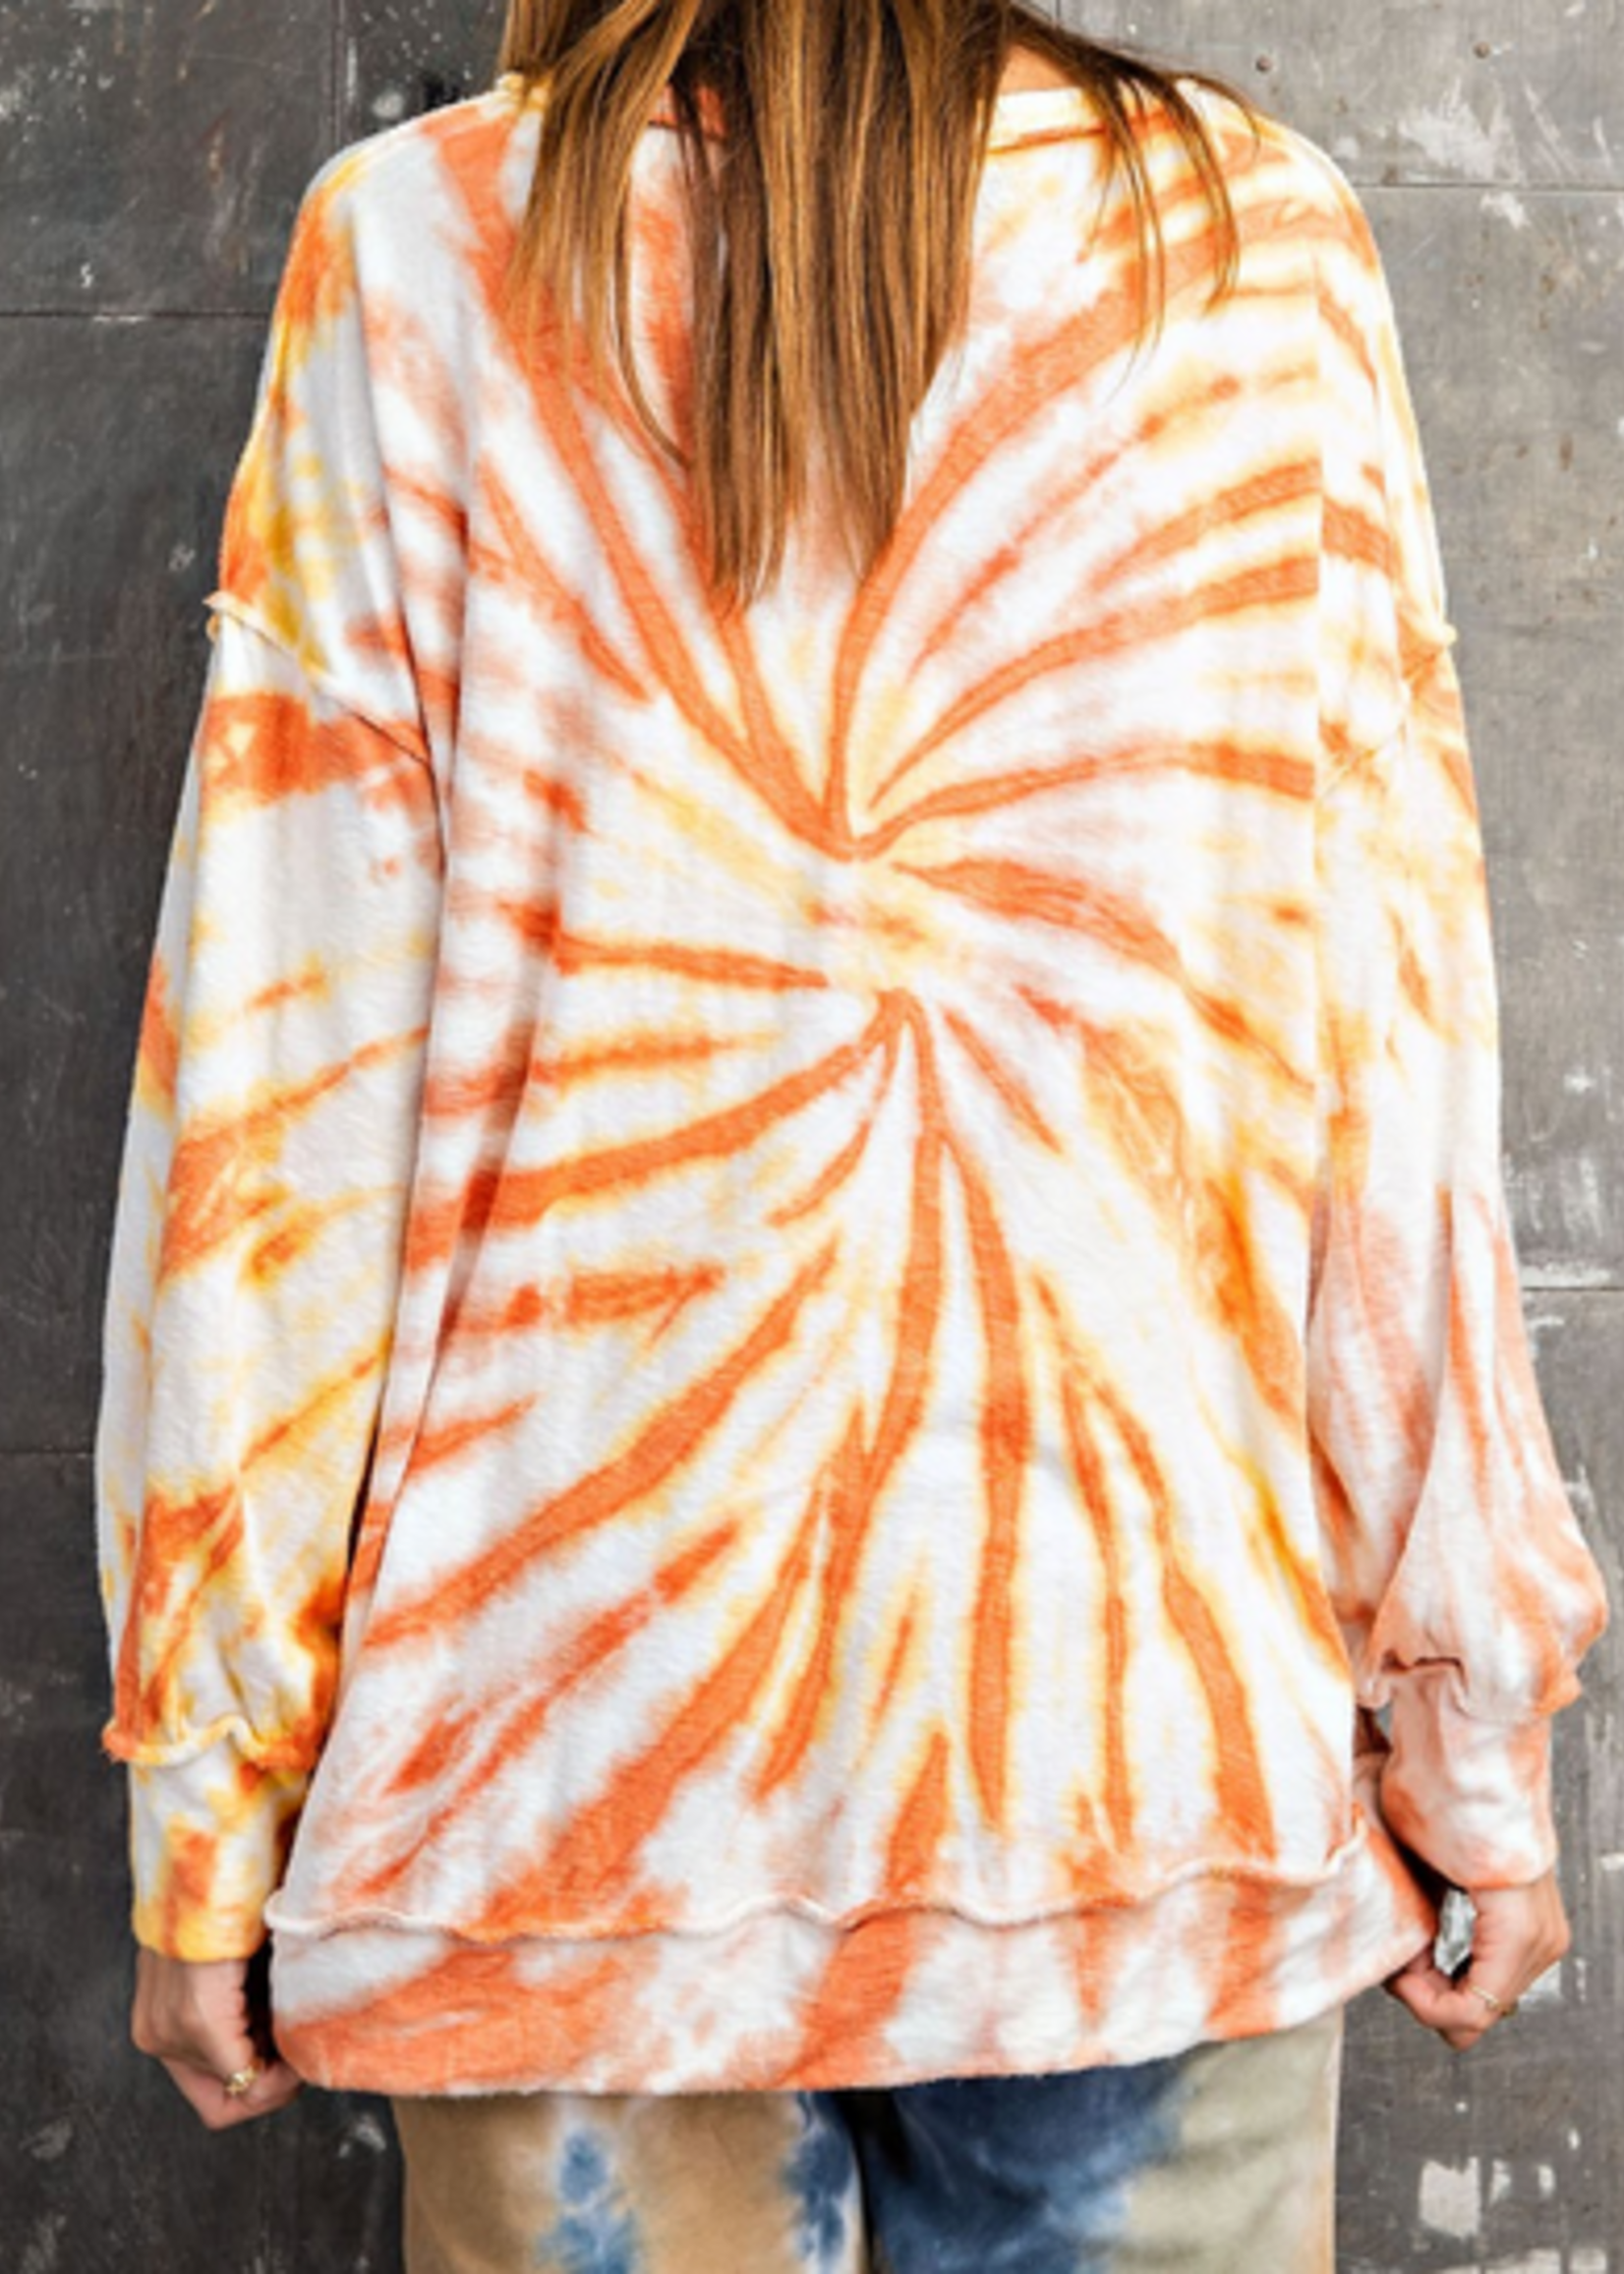 TERRY TIE DYE PULLOVER SUNSHINE YELLOW